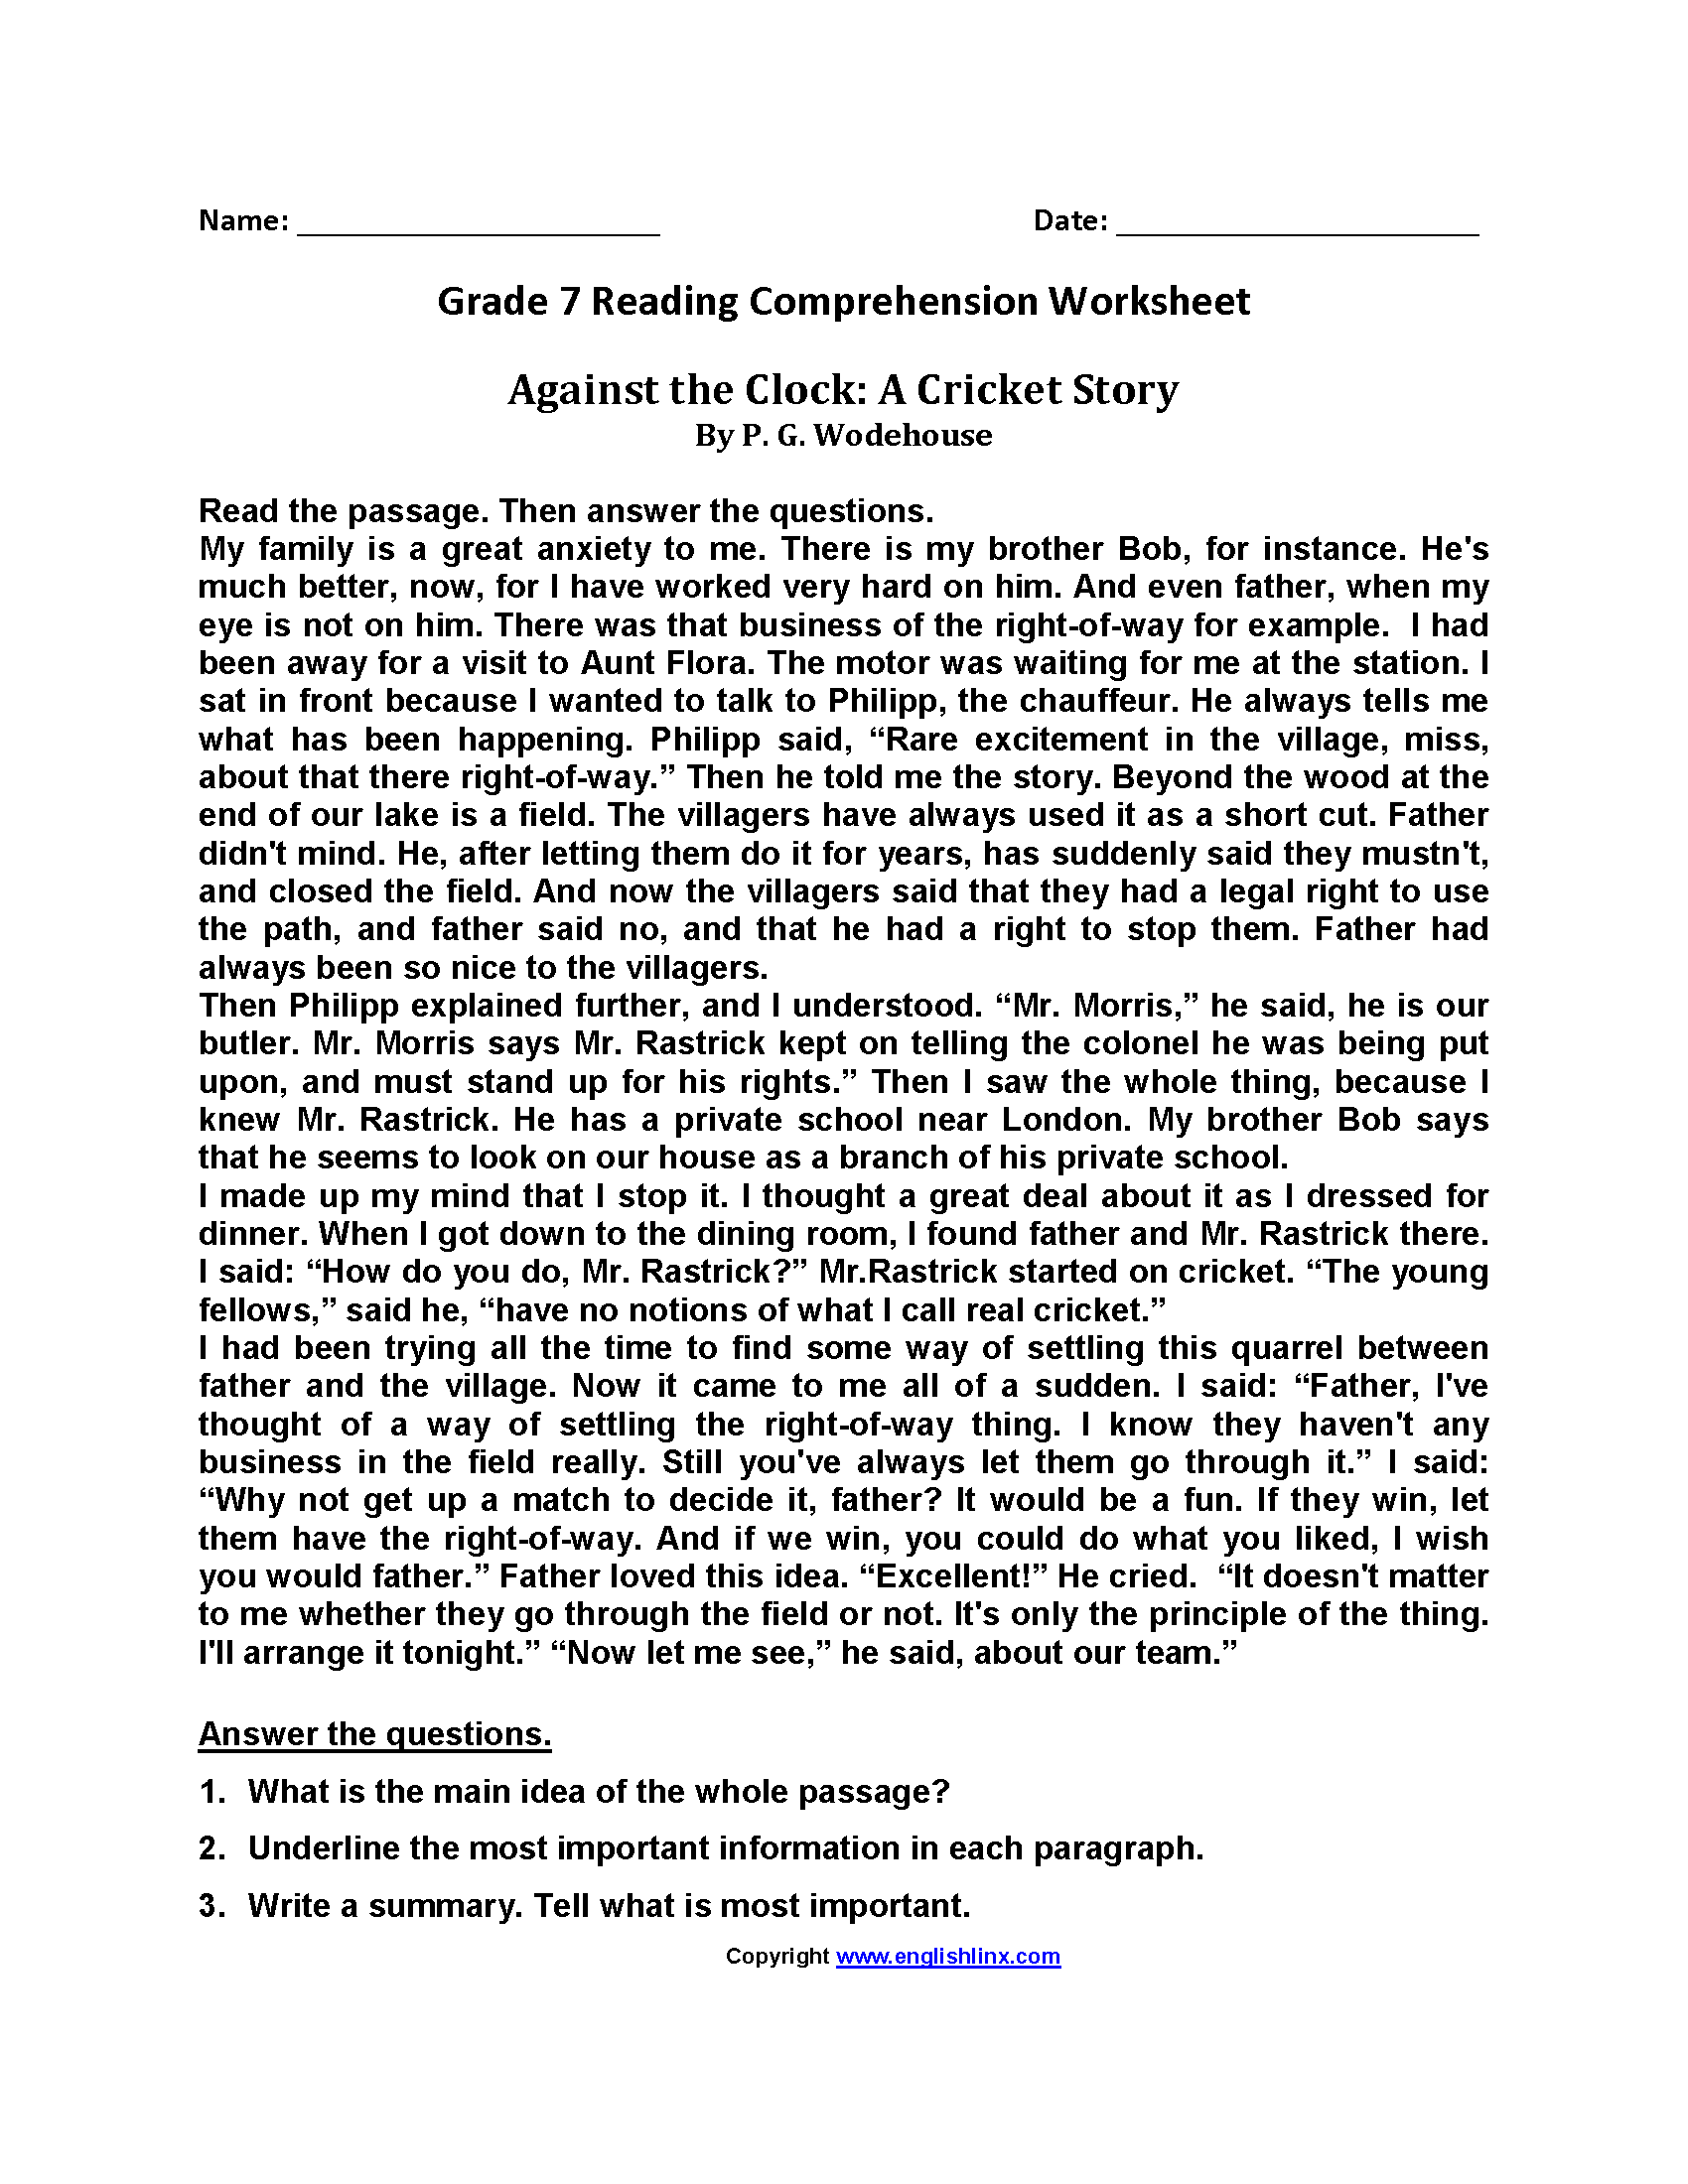 Worksheets 7th Grade Reading Comprehension Worksheets Free reading worksheets seventh grade worksheets